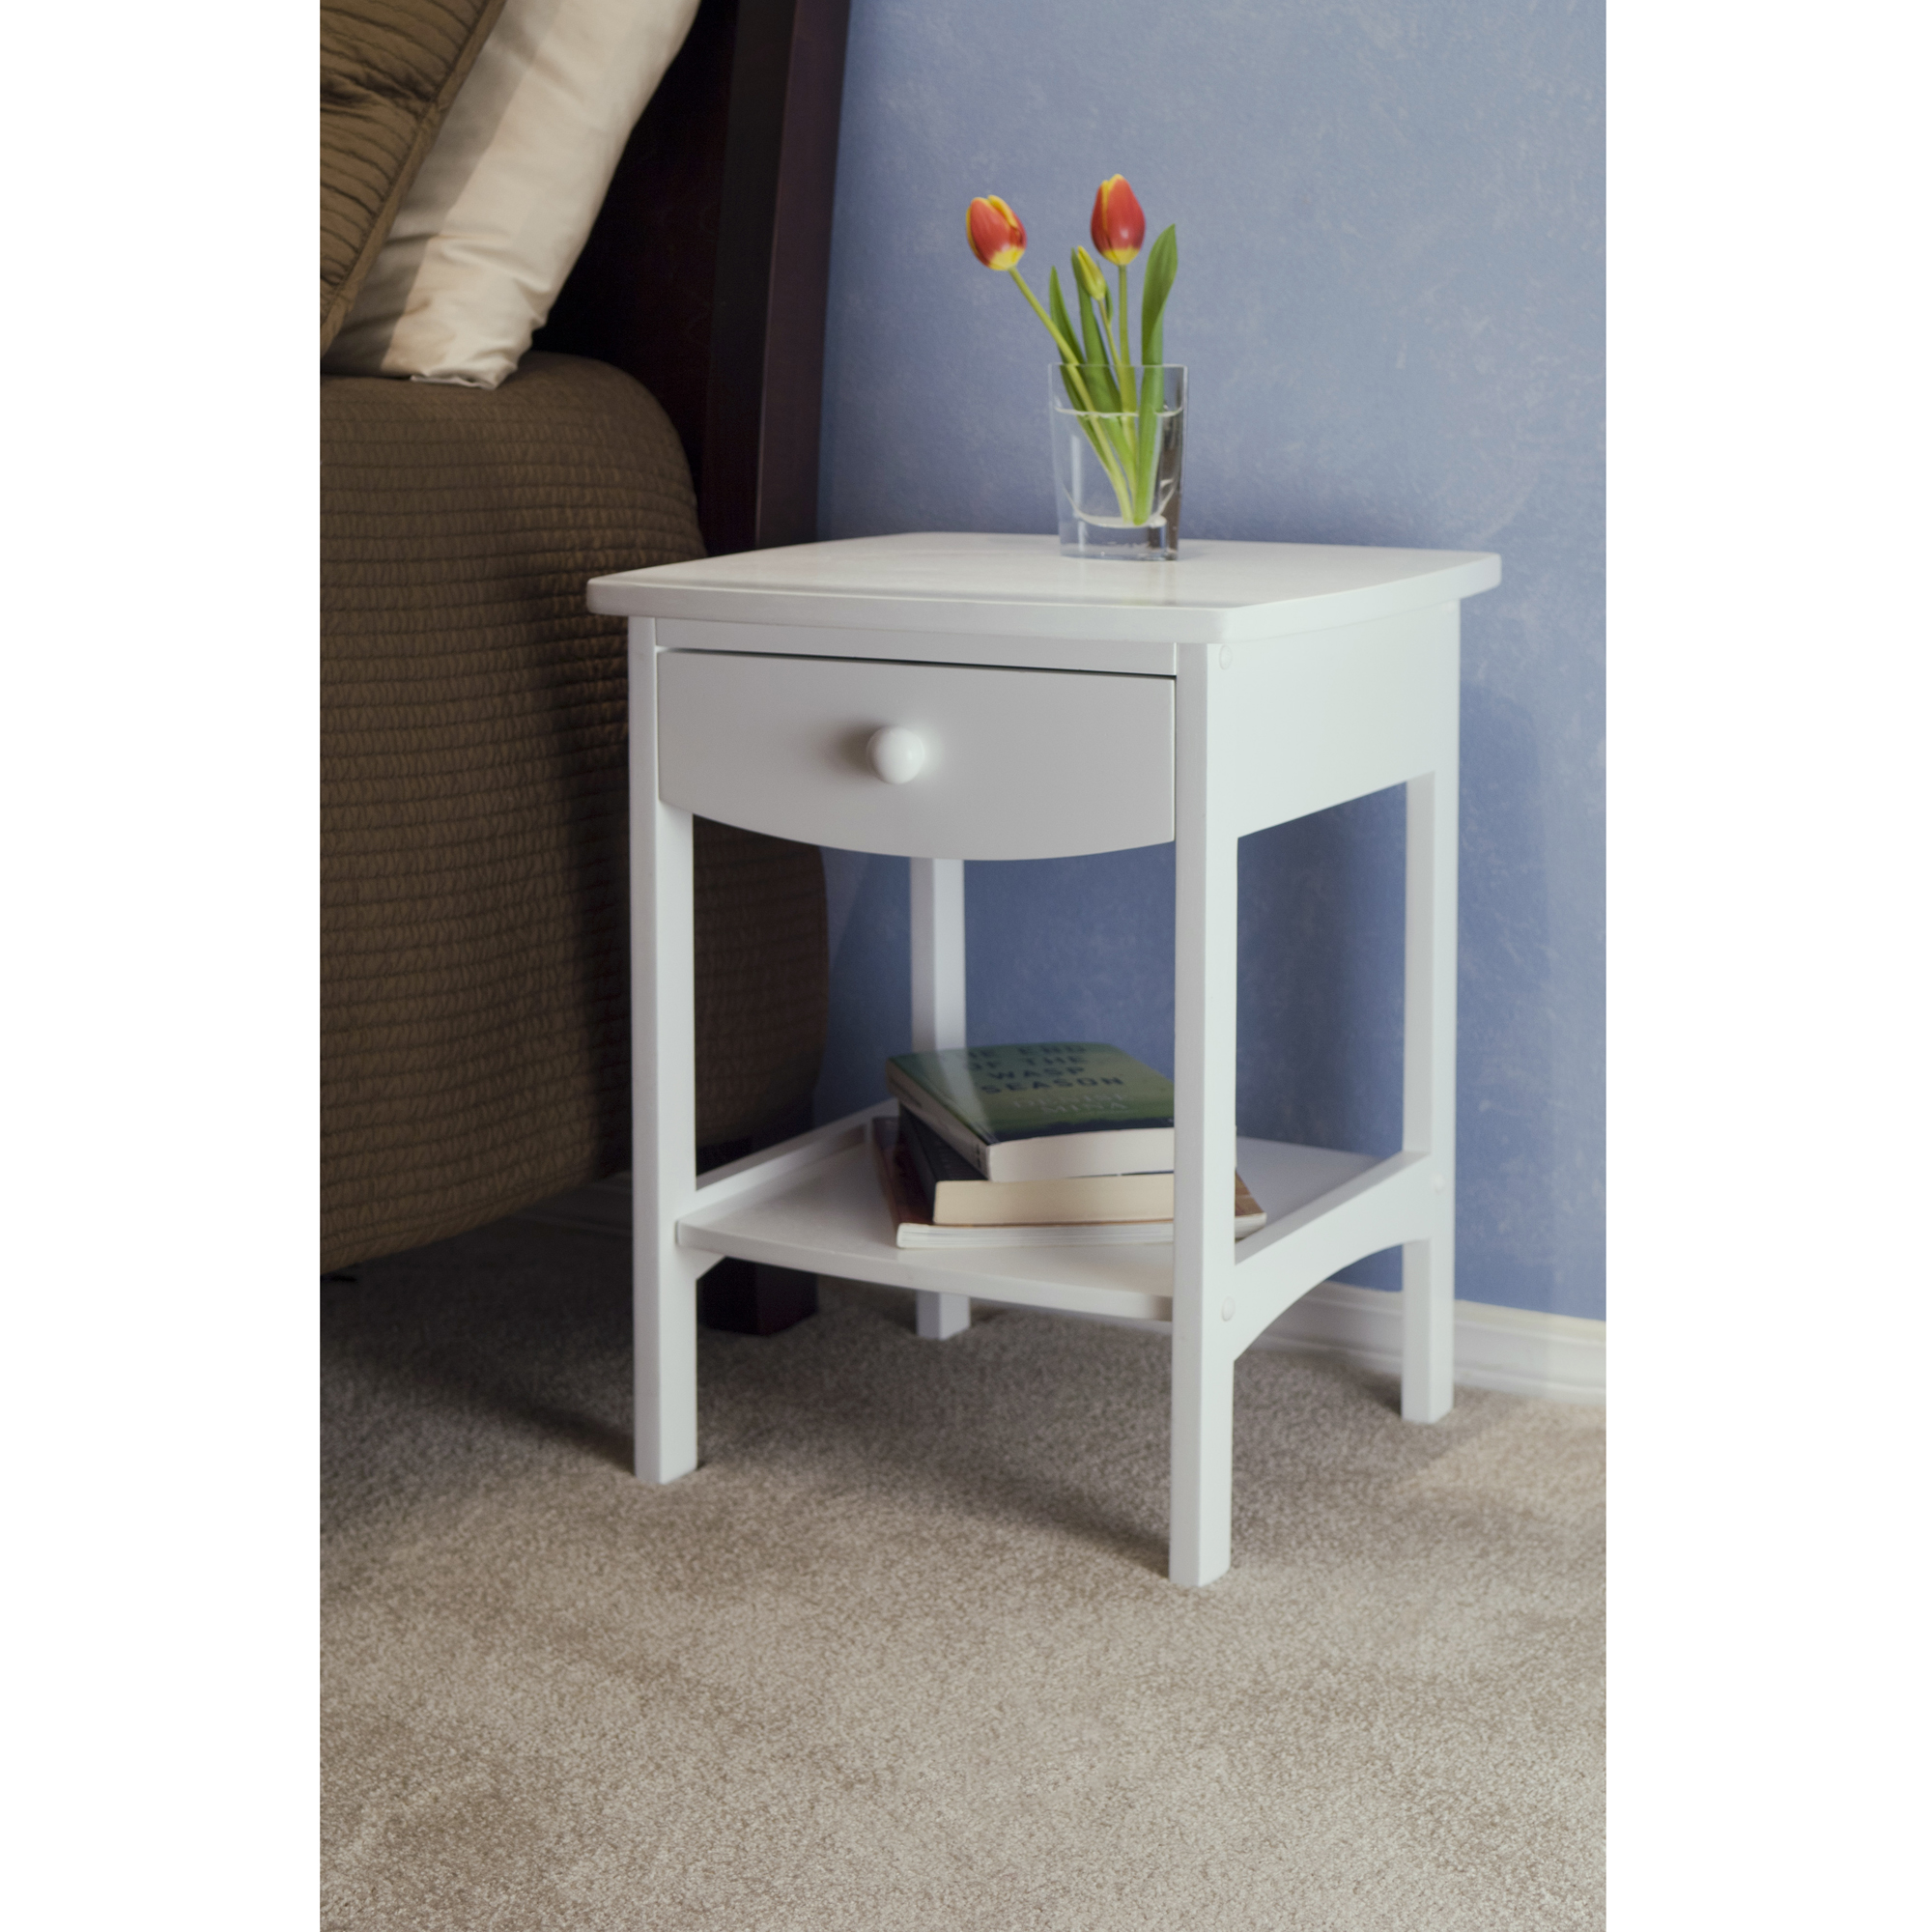 winsome trading curved drawer nightstand end table eugene accent espresso dale tiffany crystal lamps marble coffee gold legs hobby lobby craft natural cherry with usb charger